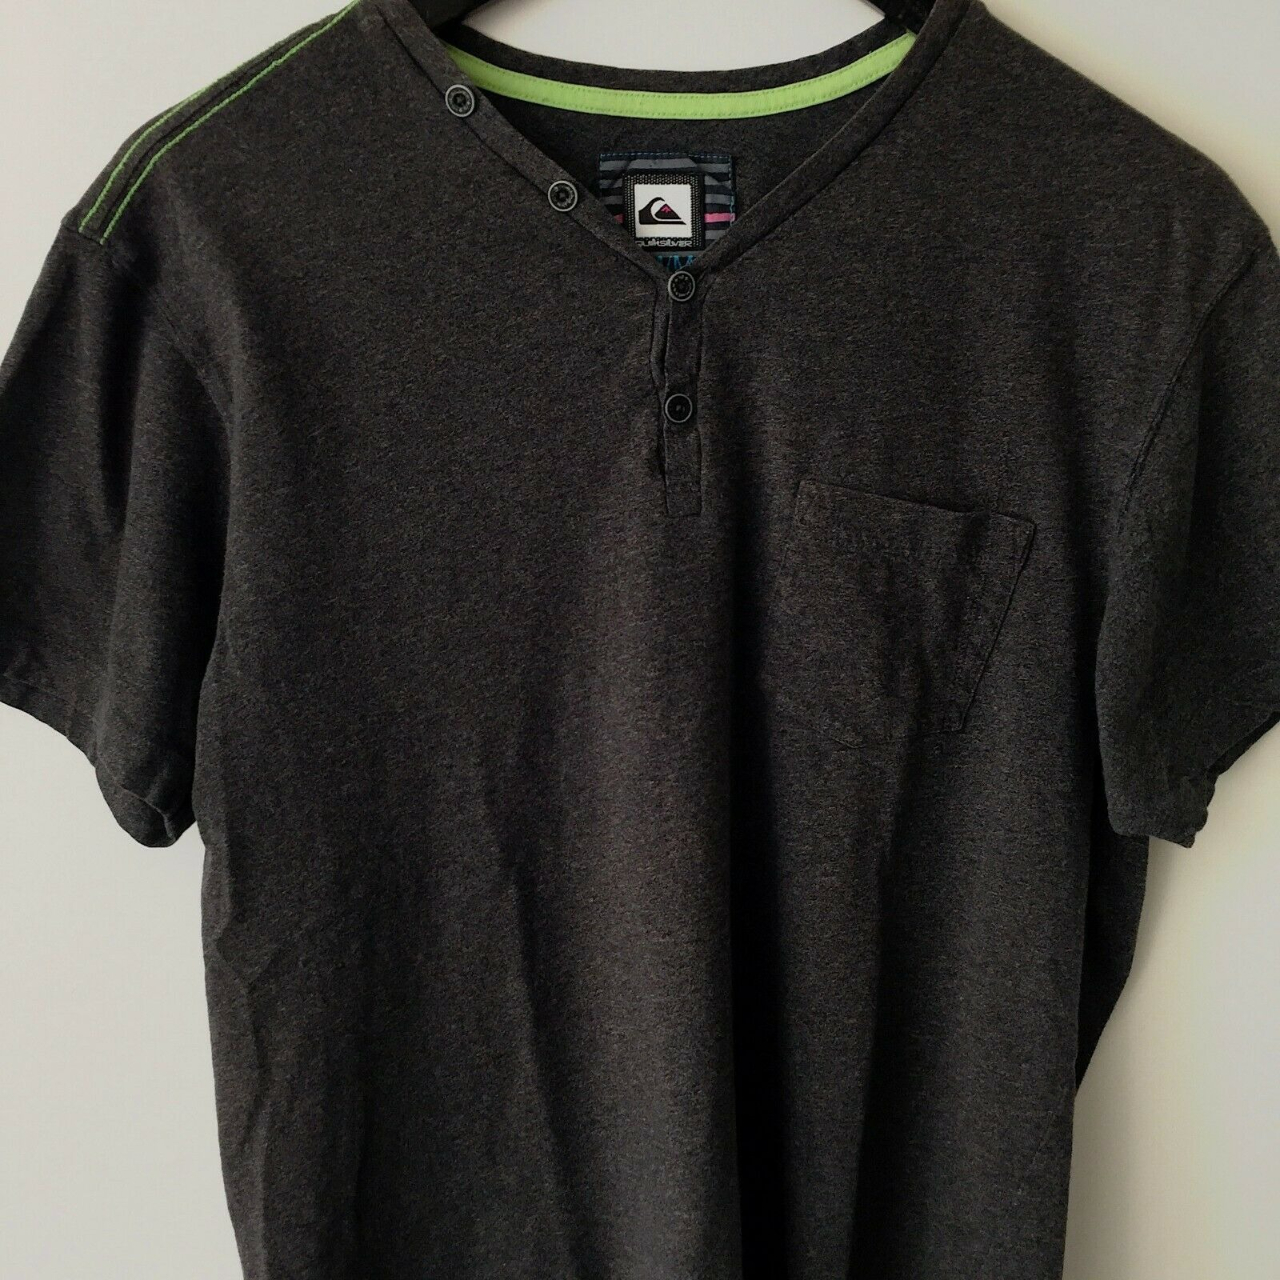 Product Image 1 - Quiksilver Pocket Tee Surf Graphic